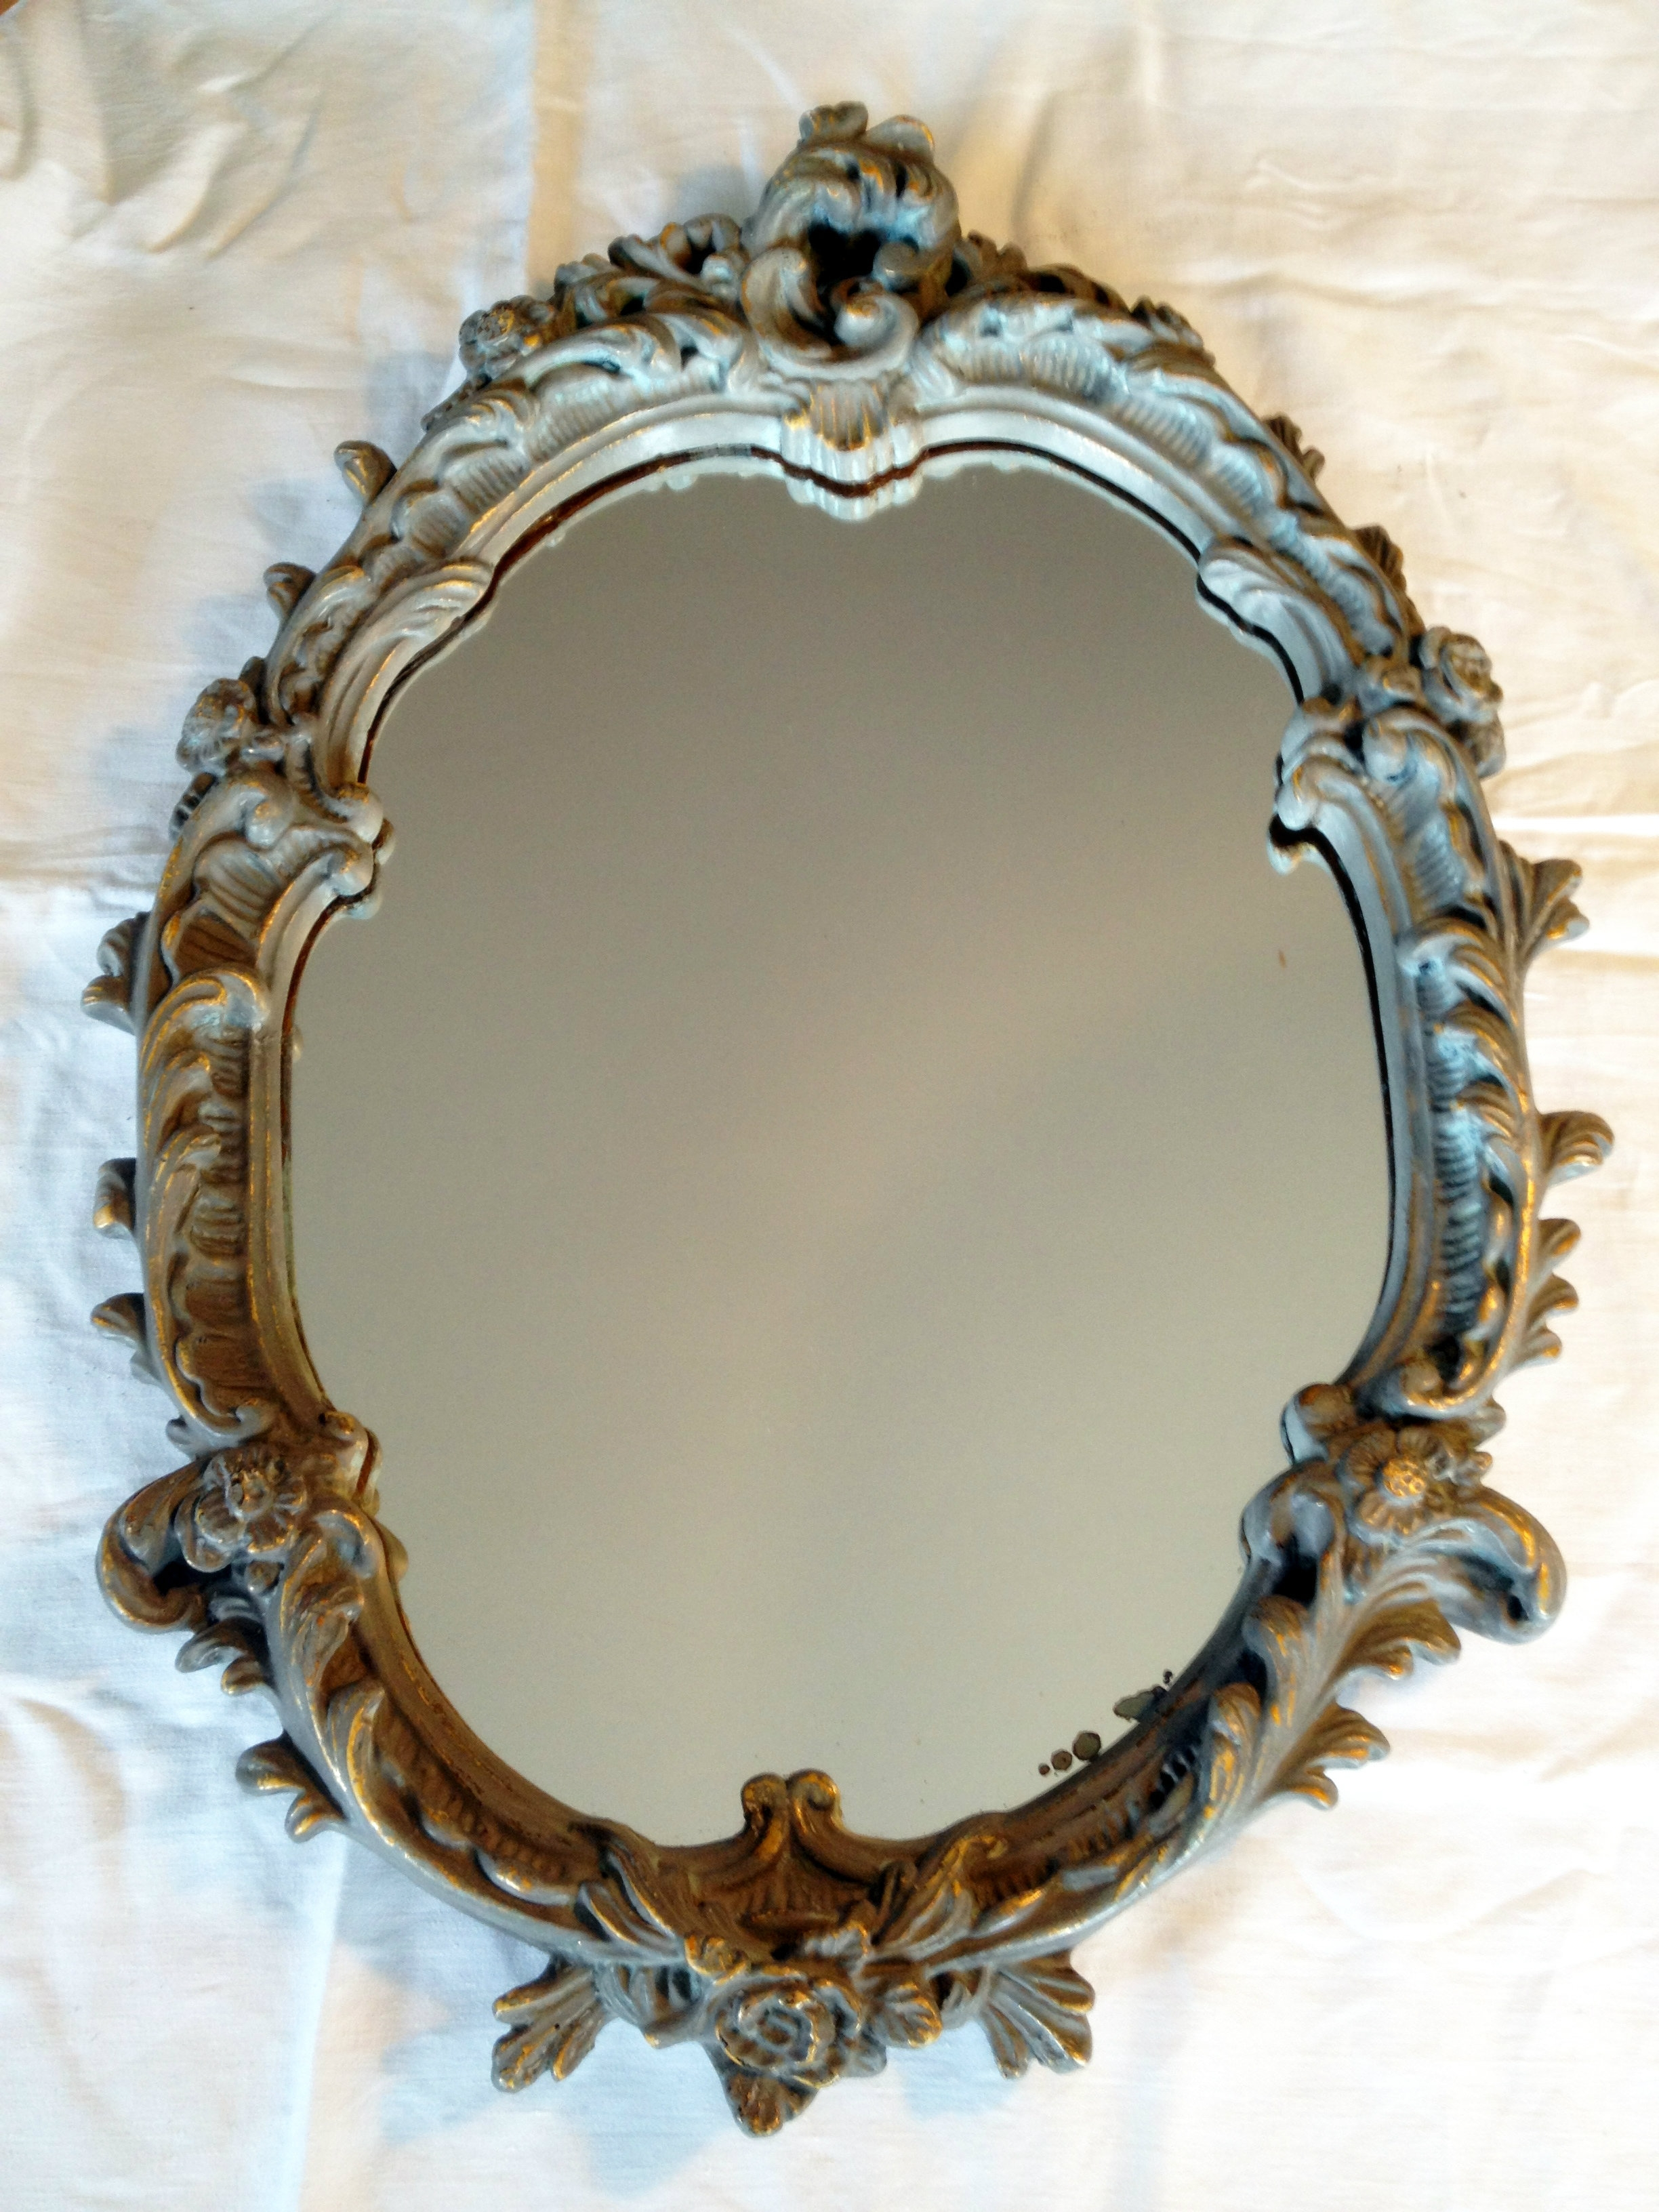 Antique Mirrors Treasurepalace Designs Ornate Vintage Mirror Pertaining To Ornate Vintage Mirror (Image 1 of 15)